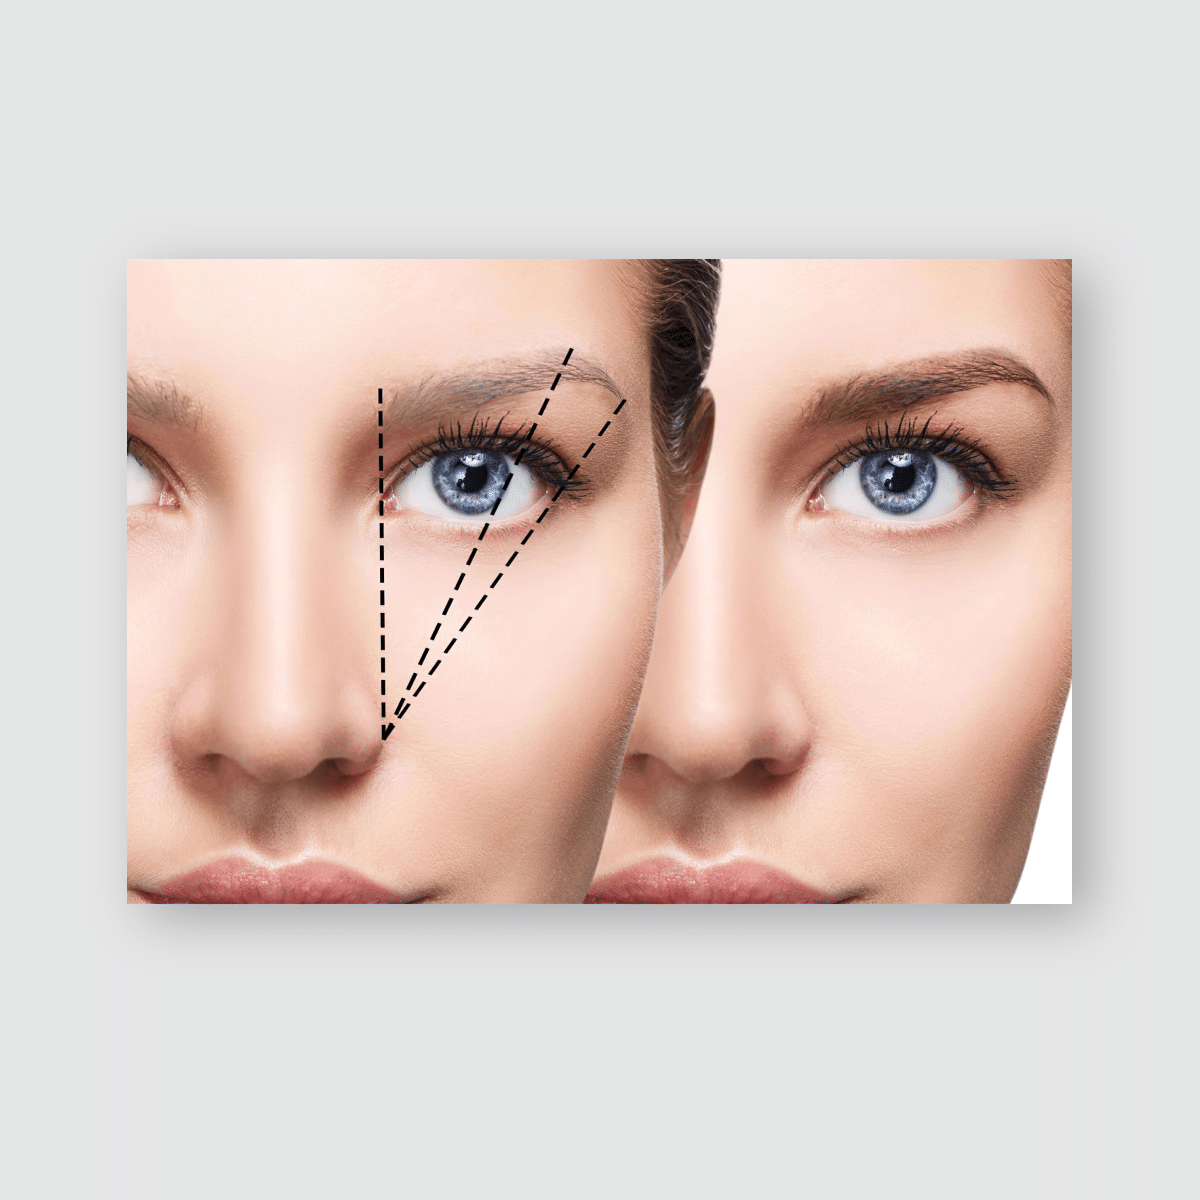 Female Face Before After Eyebrows Correction Poster, Sticker, Ornament